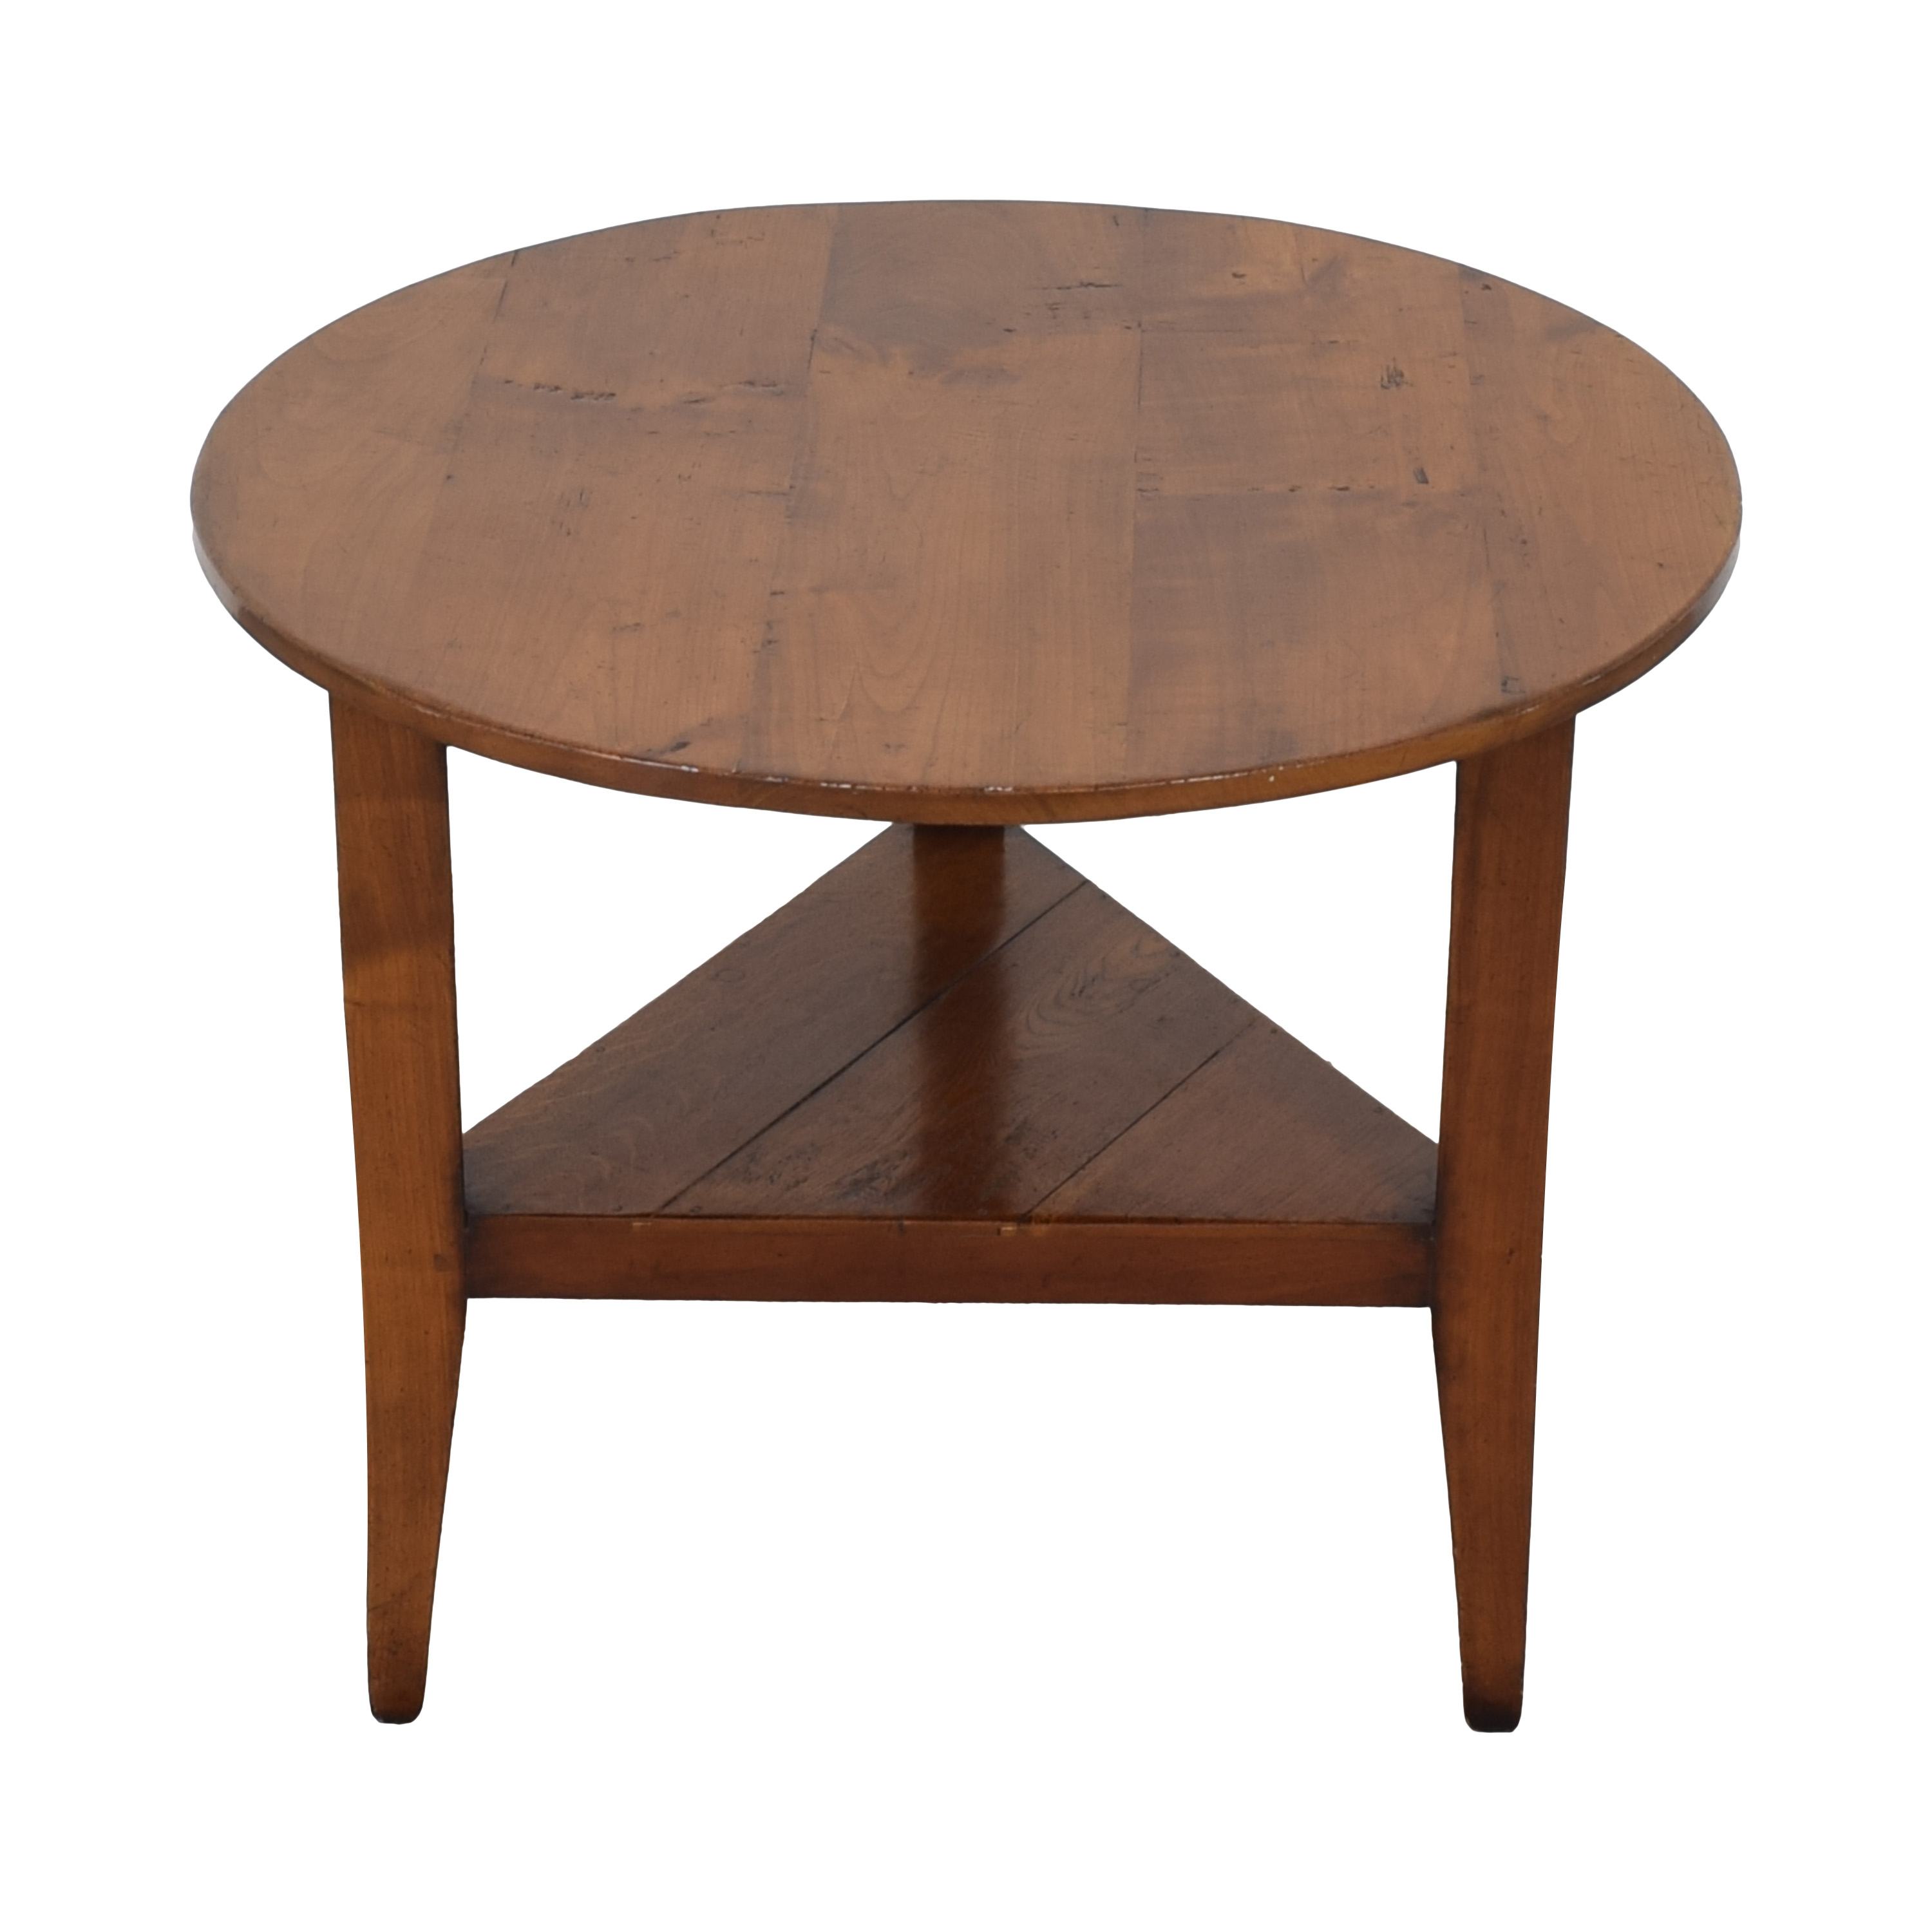 Ethan Allen Ethan Allen Side Table nyc